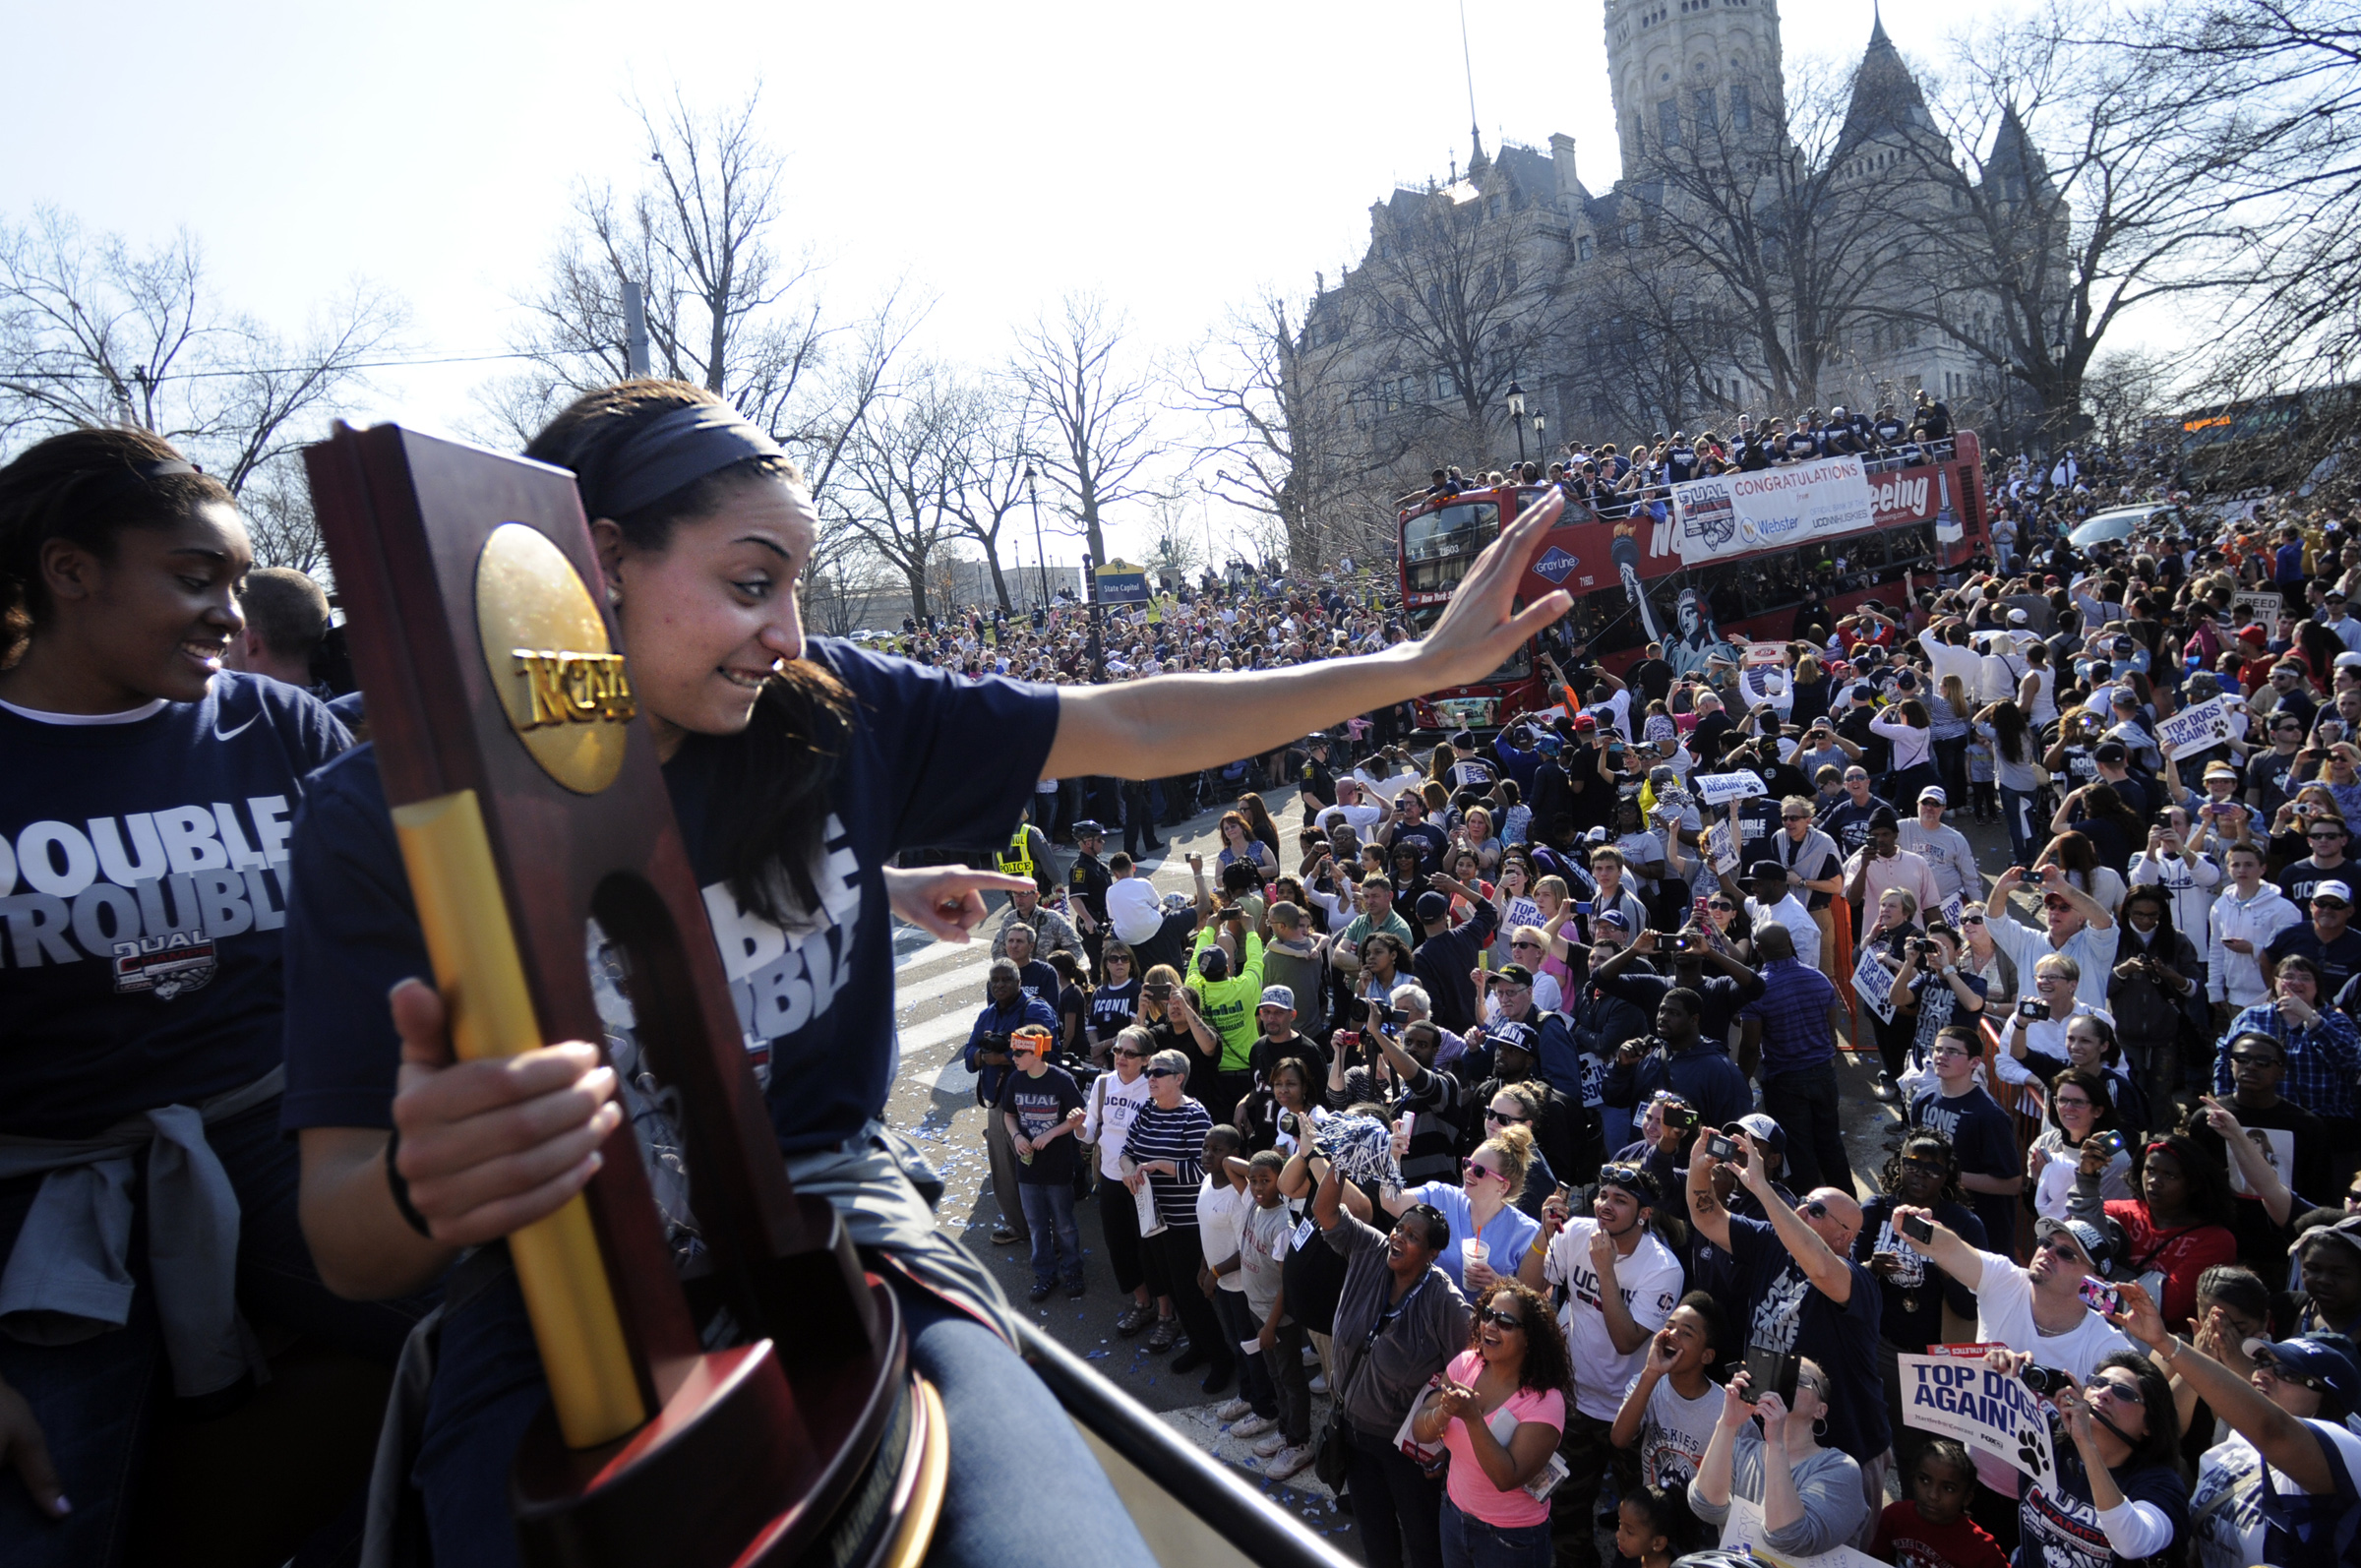 phots from parade and rally for uconn men and women winning national titles in basketball